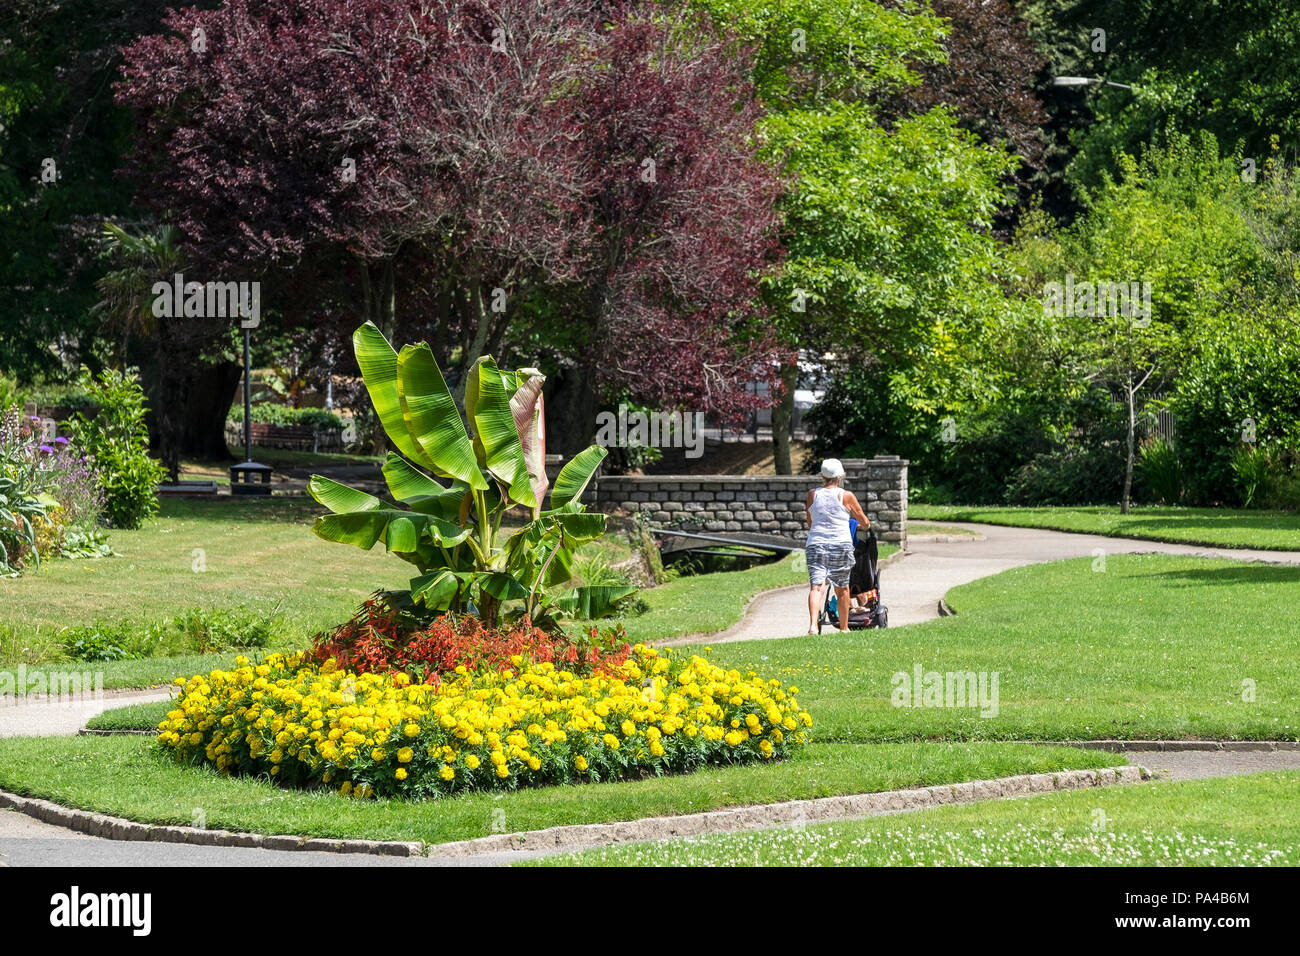 A woman pushing a baby buggy past flower beds in Trenance Park in Newquay in Cornwall. - Stock Image